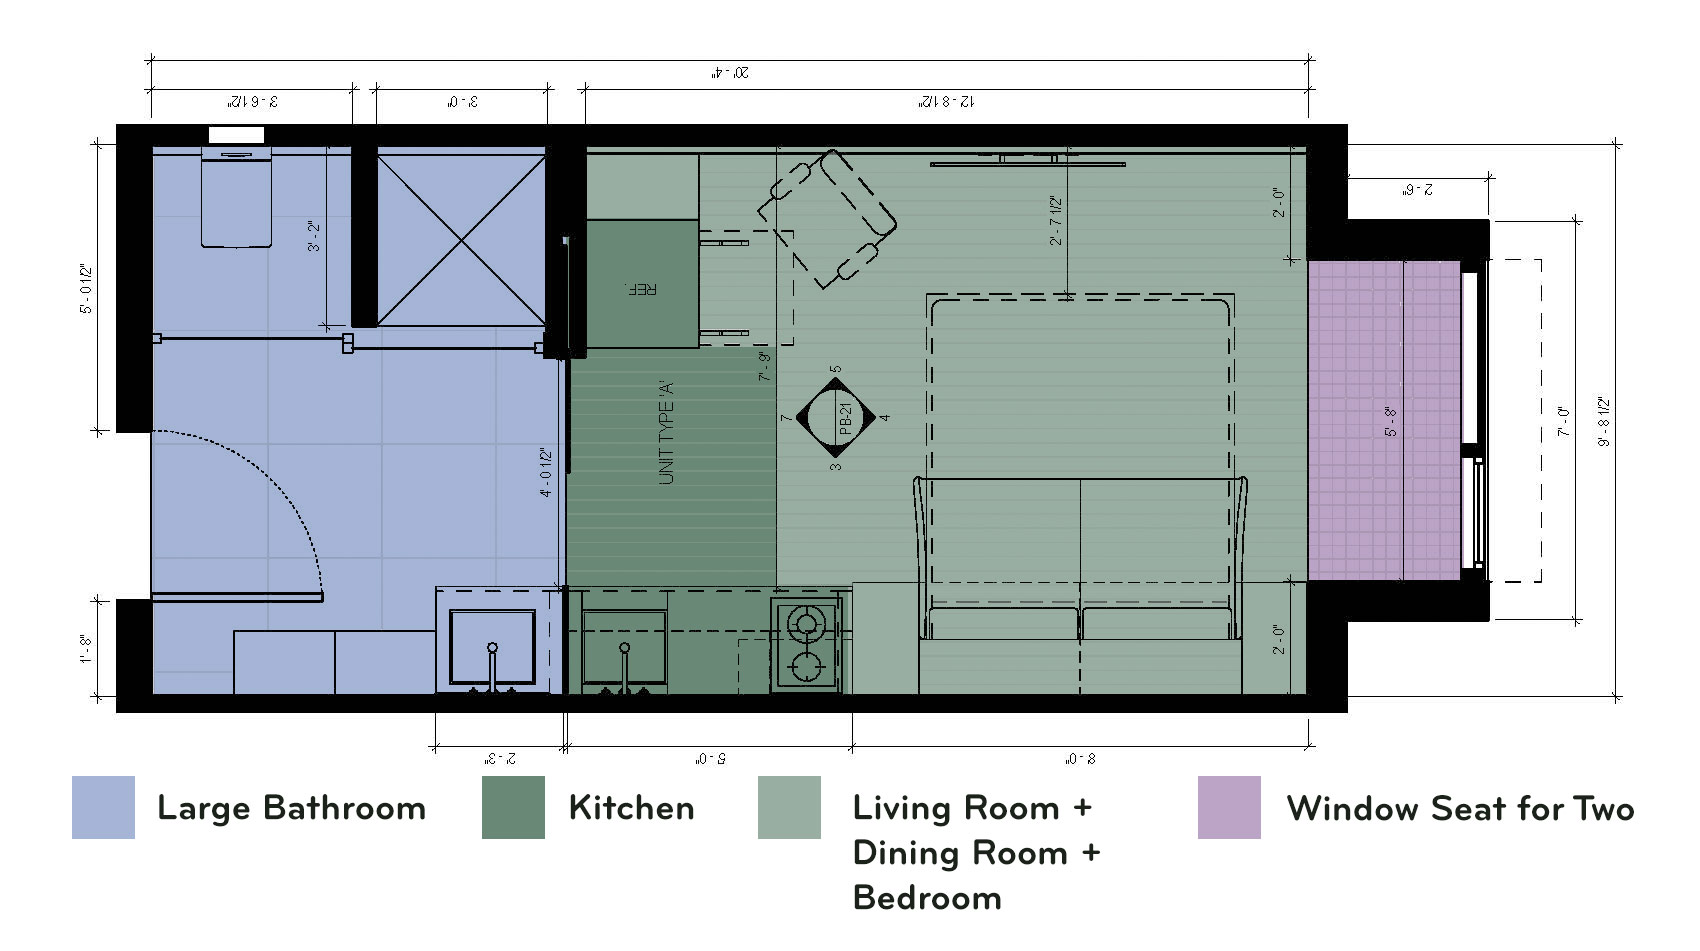 room-layout-colors